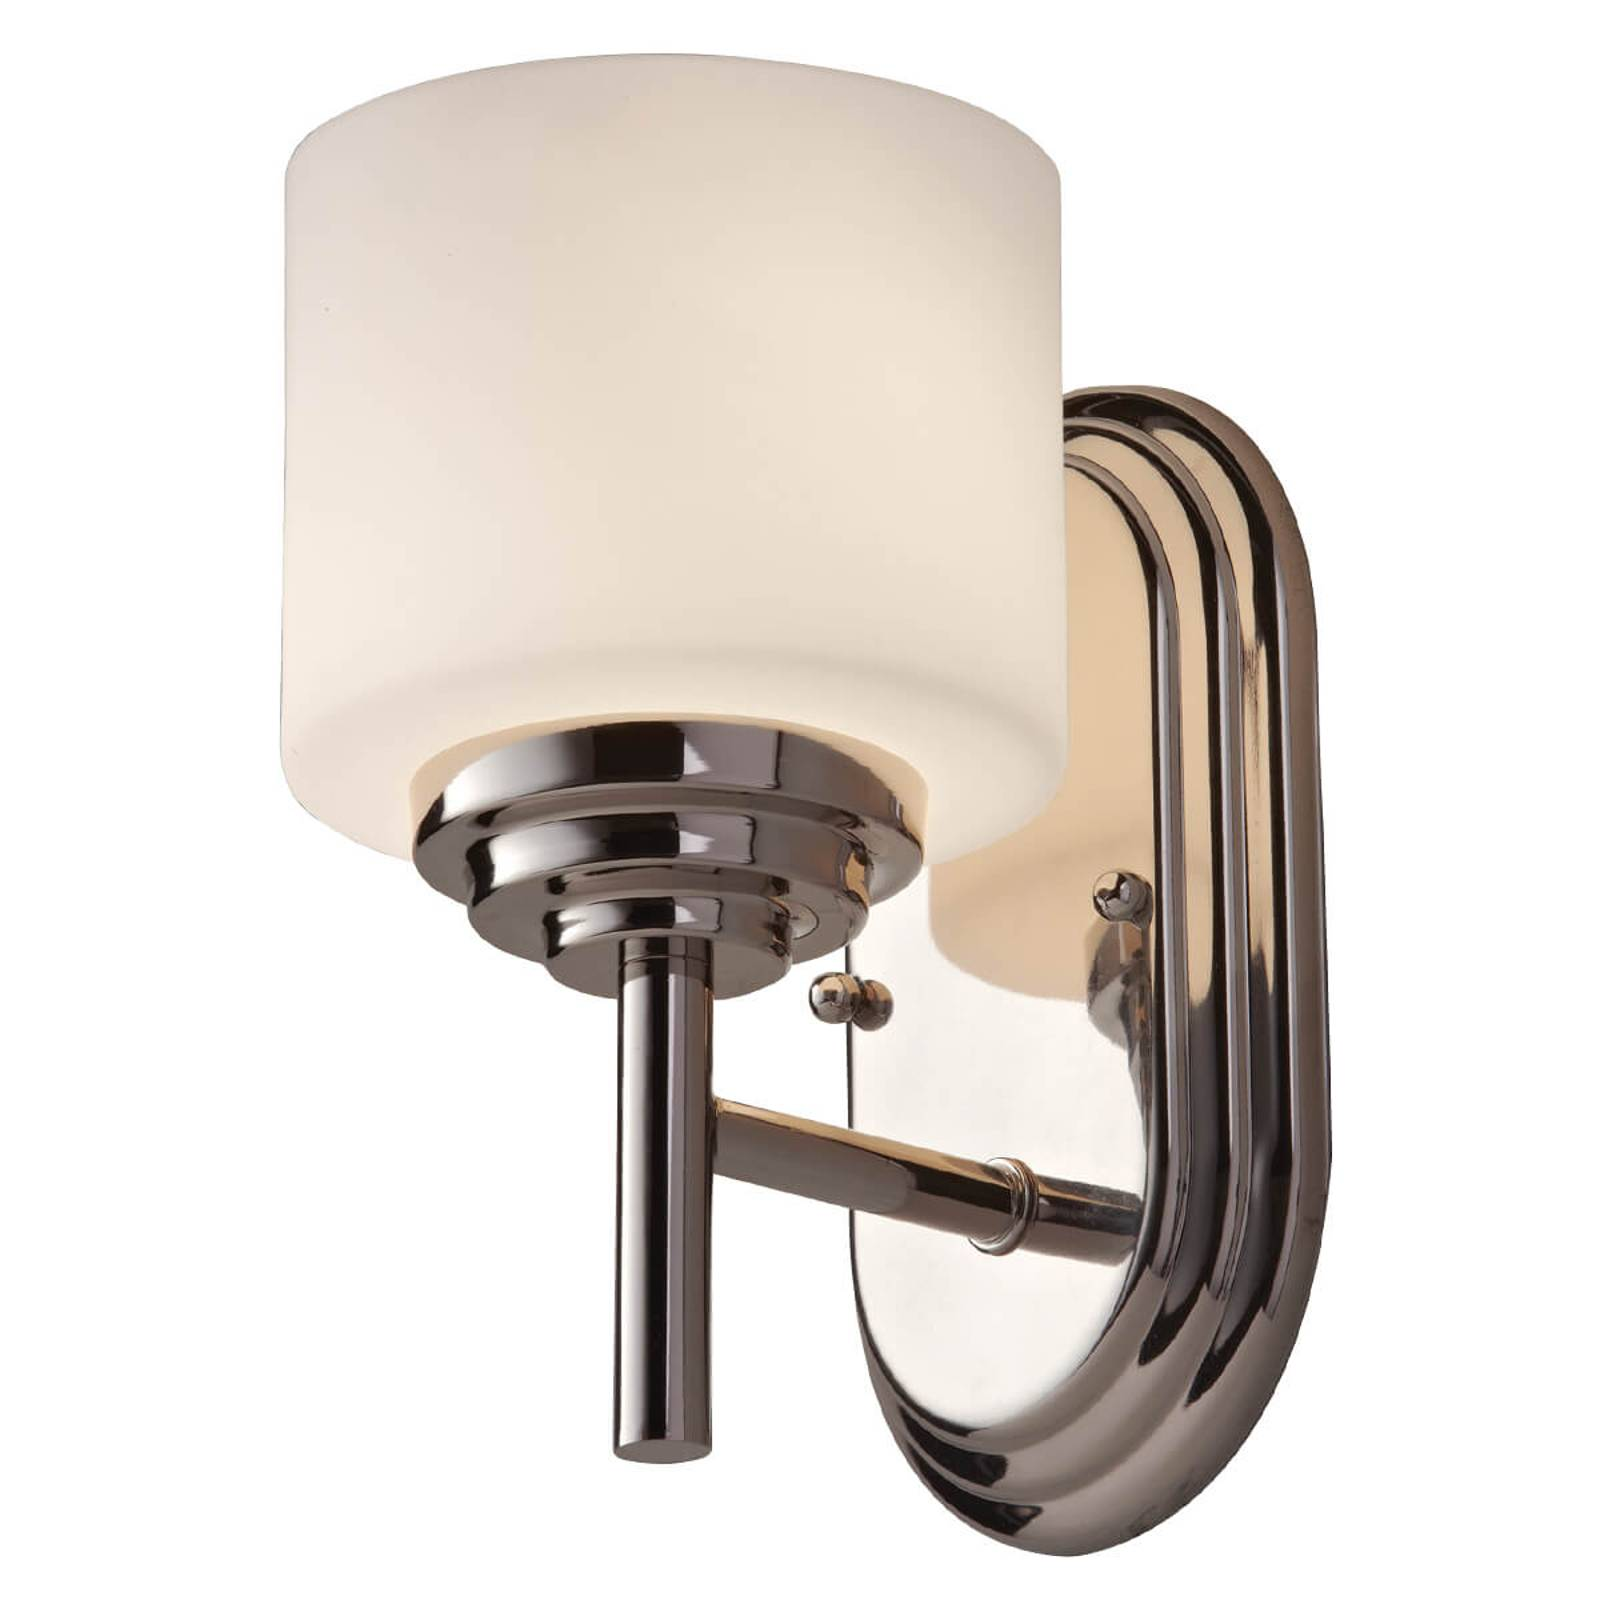 Bathroom wall light Malibu in an elegant style from FEISS